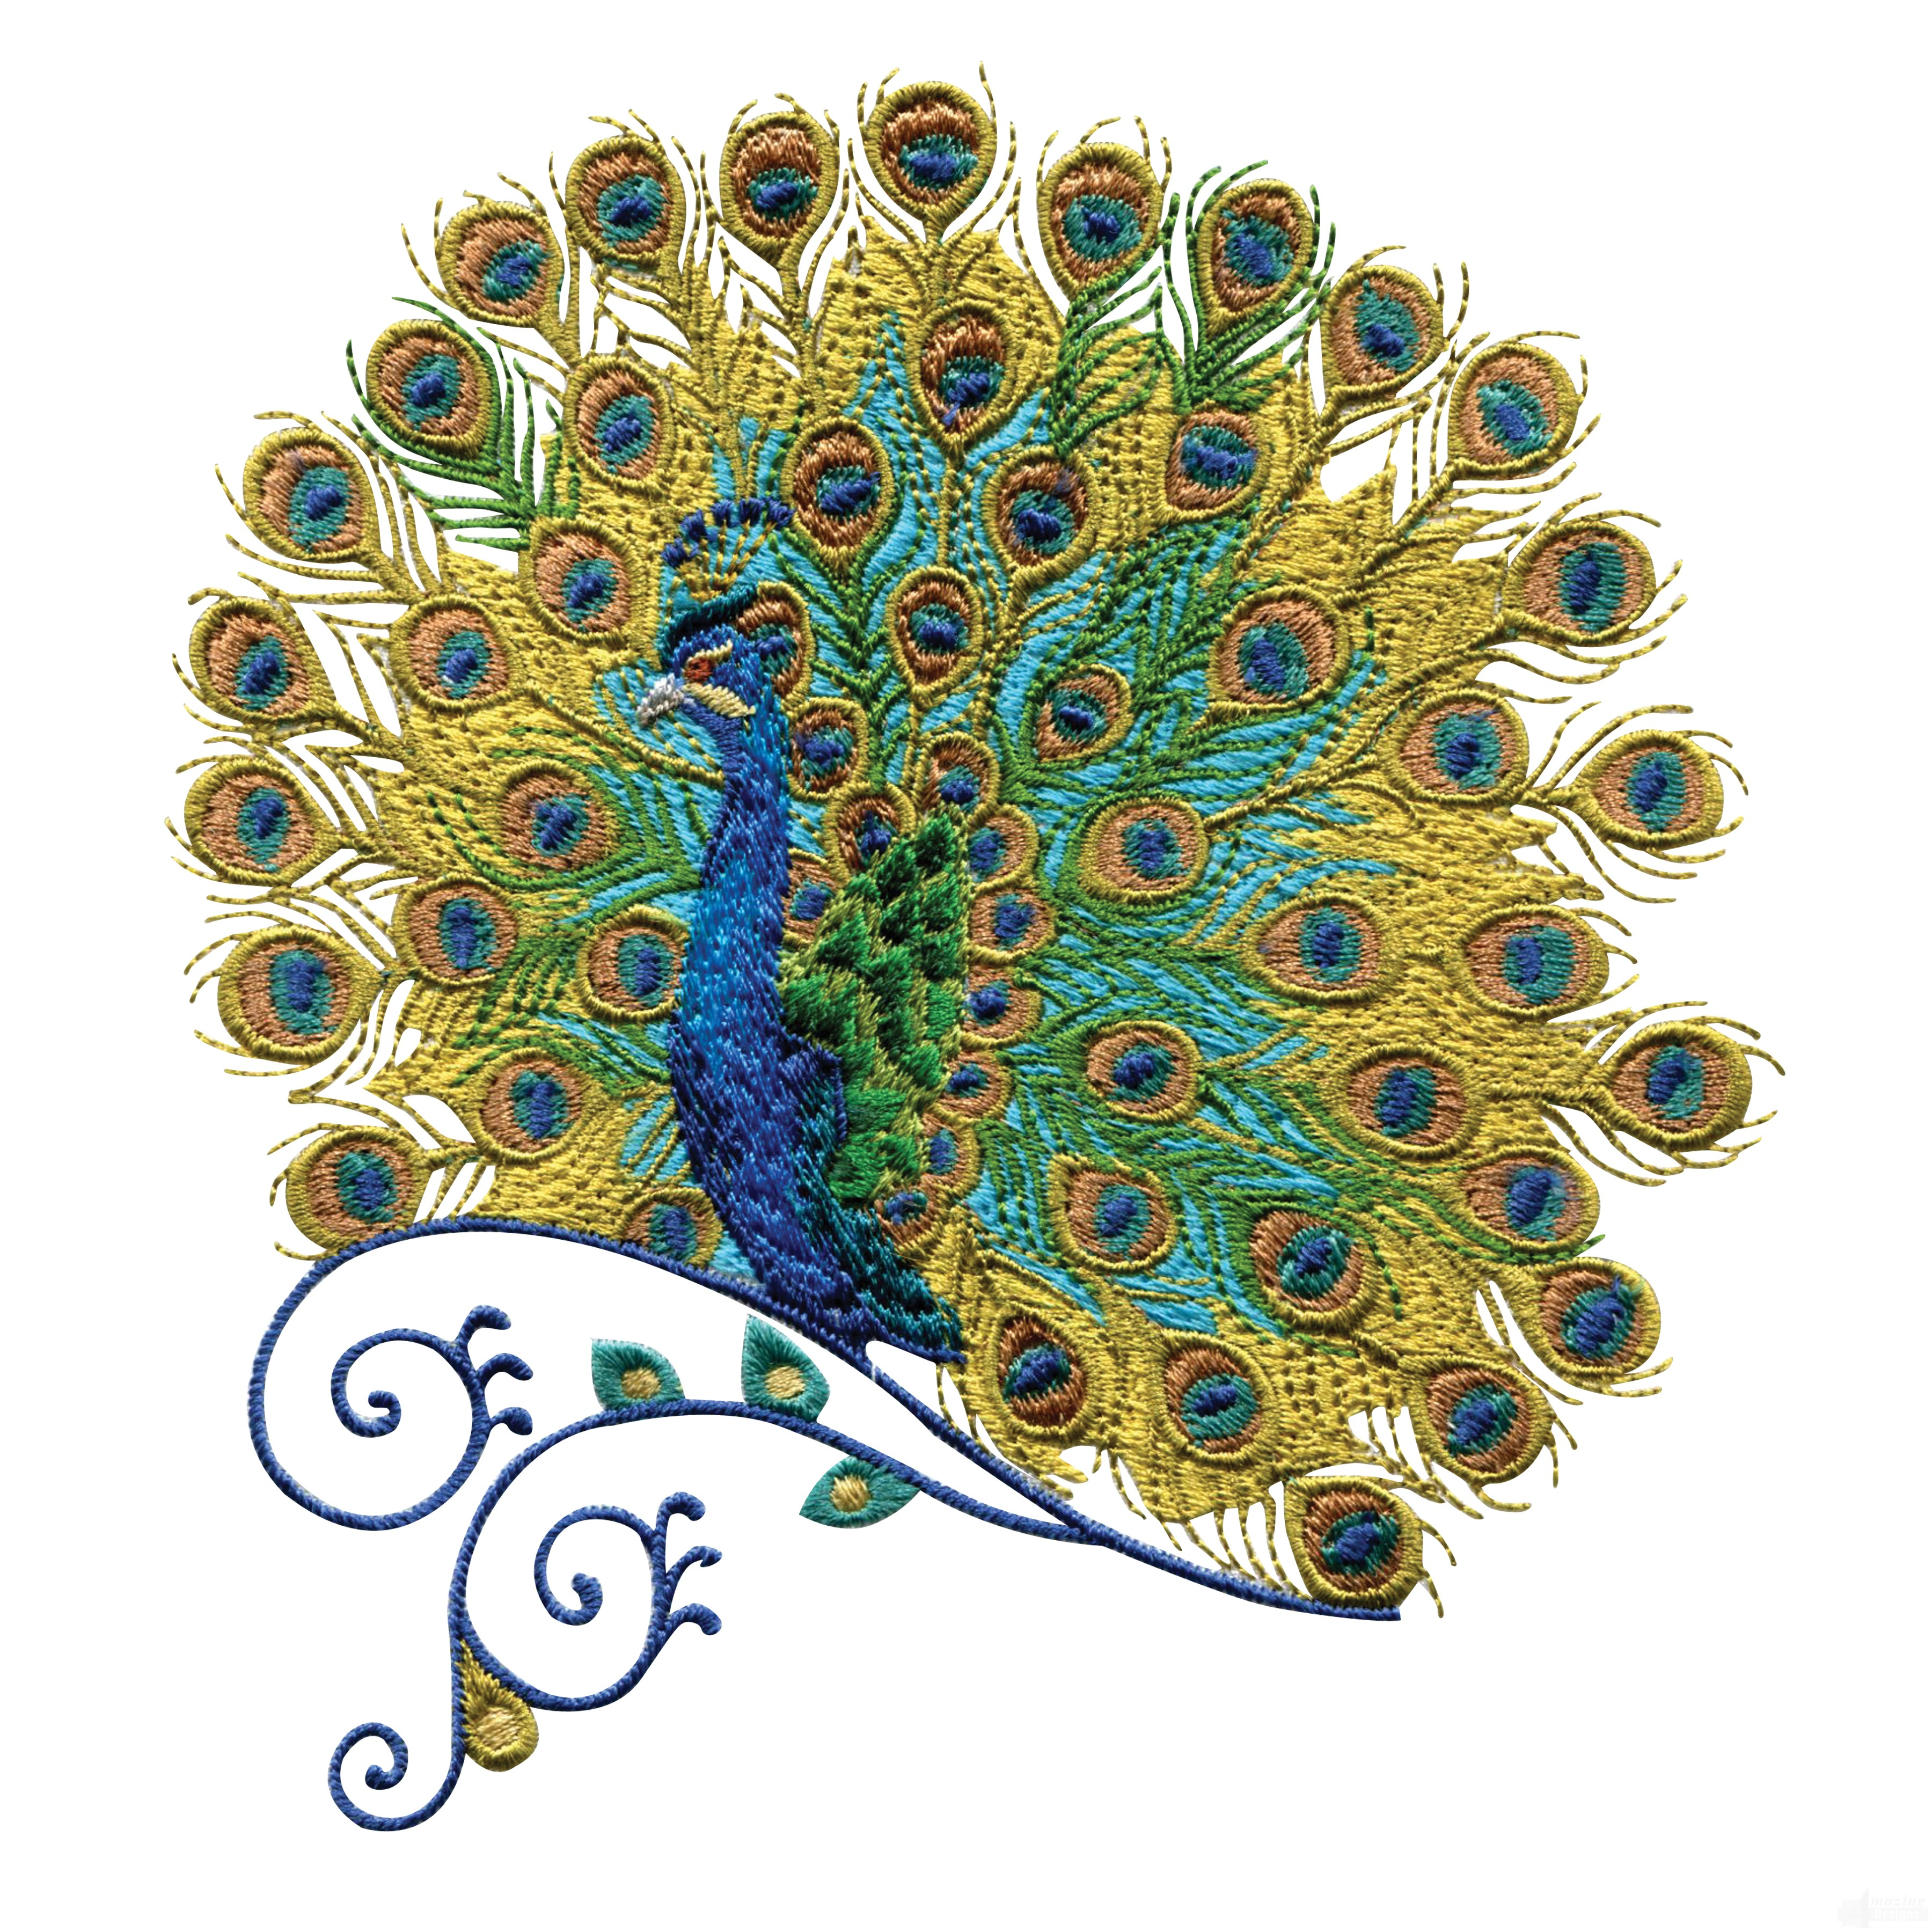 Peacock Hand Embroidery Pattern Embroidery Designs Aynise Benne